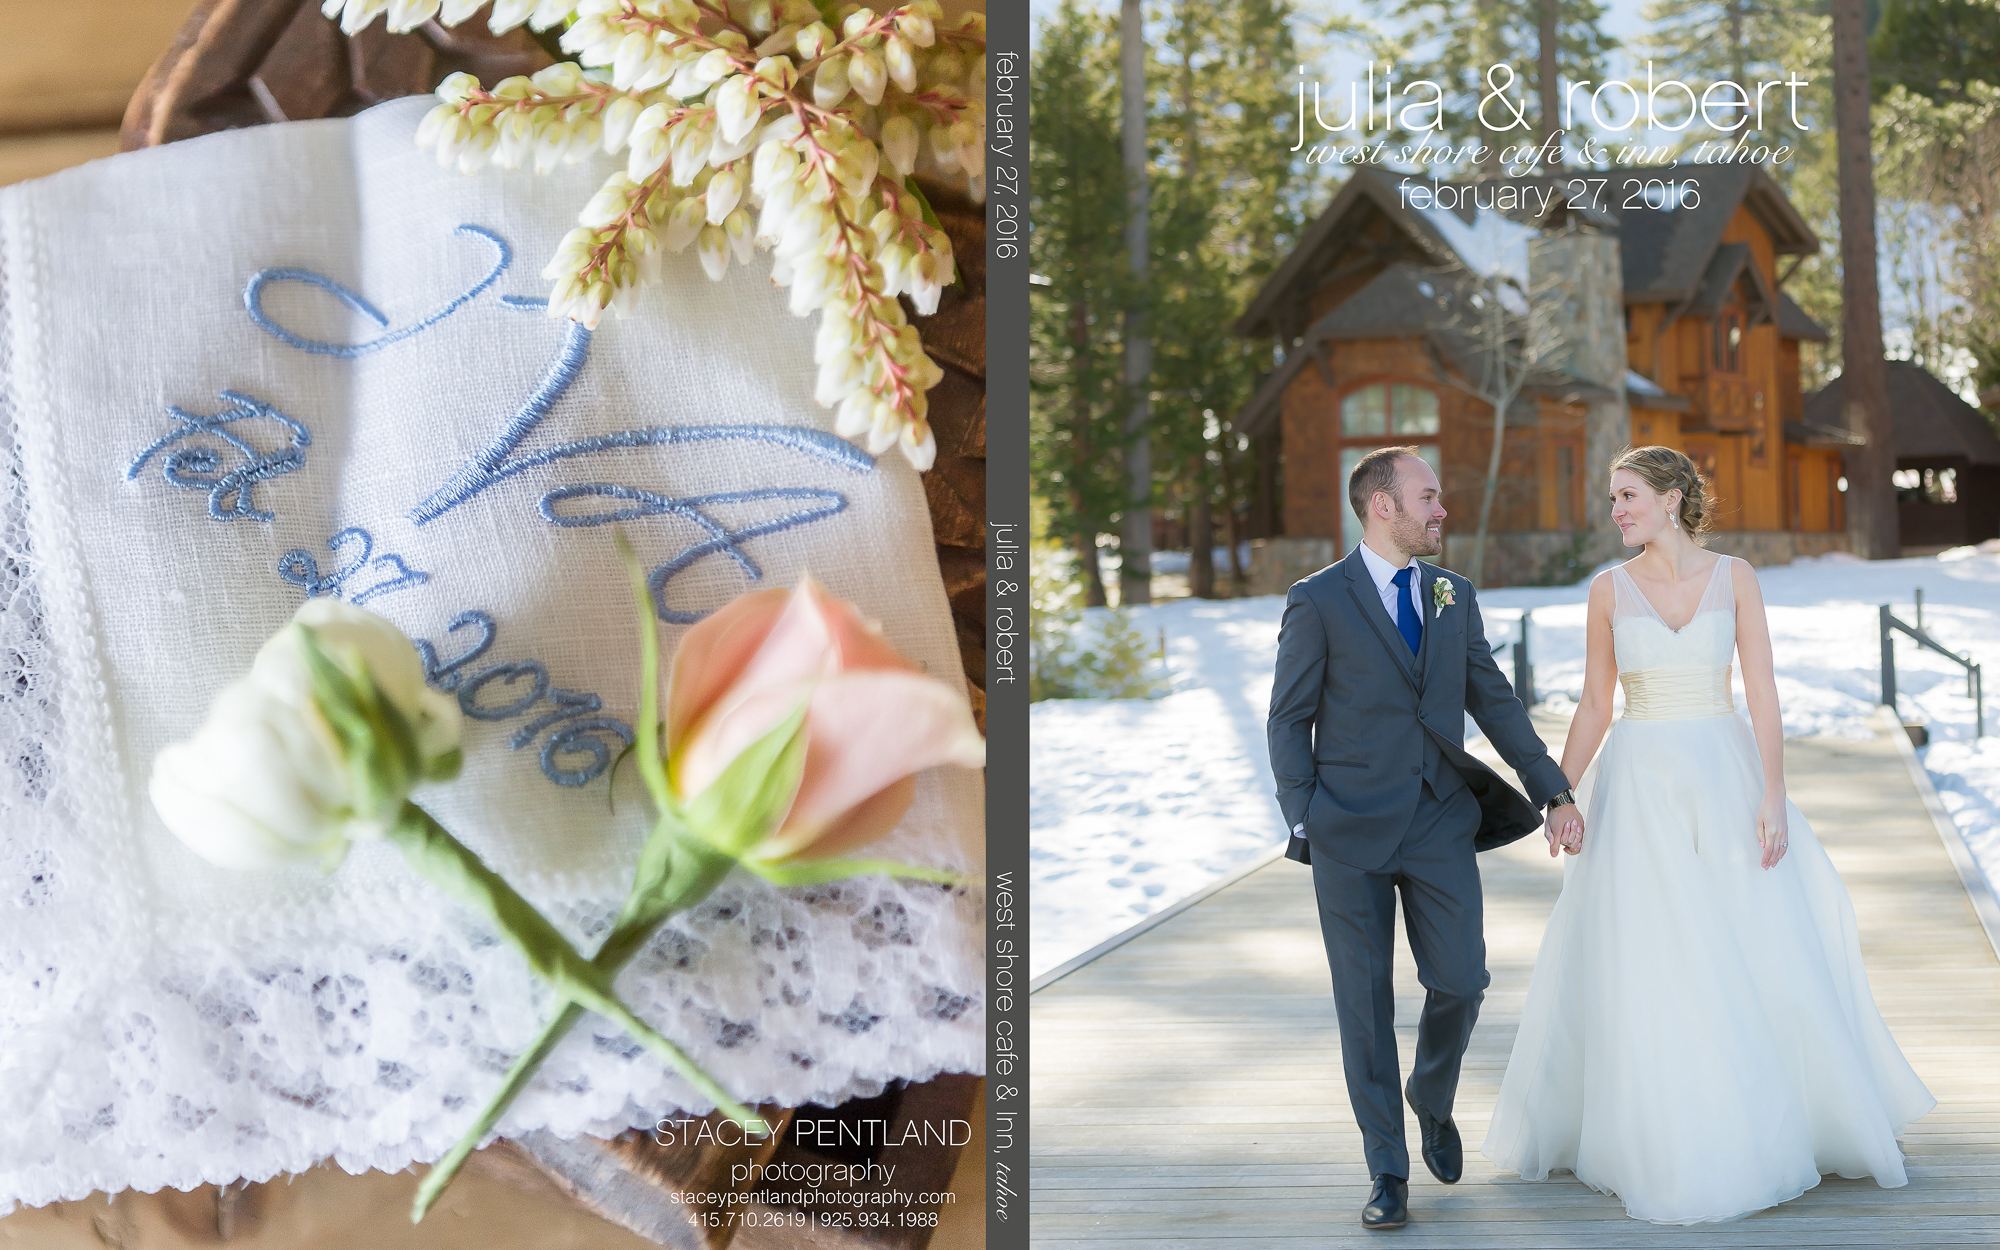 Julia+Robert_weddingbook_spp-1.jpg